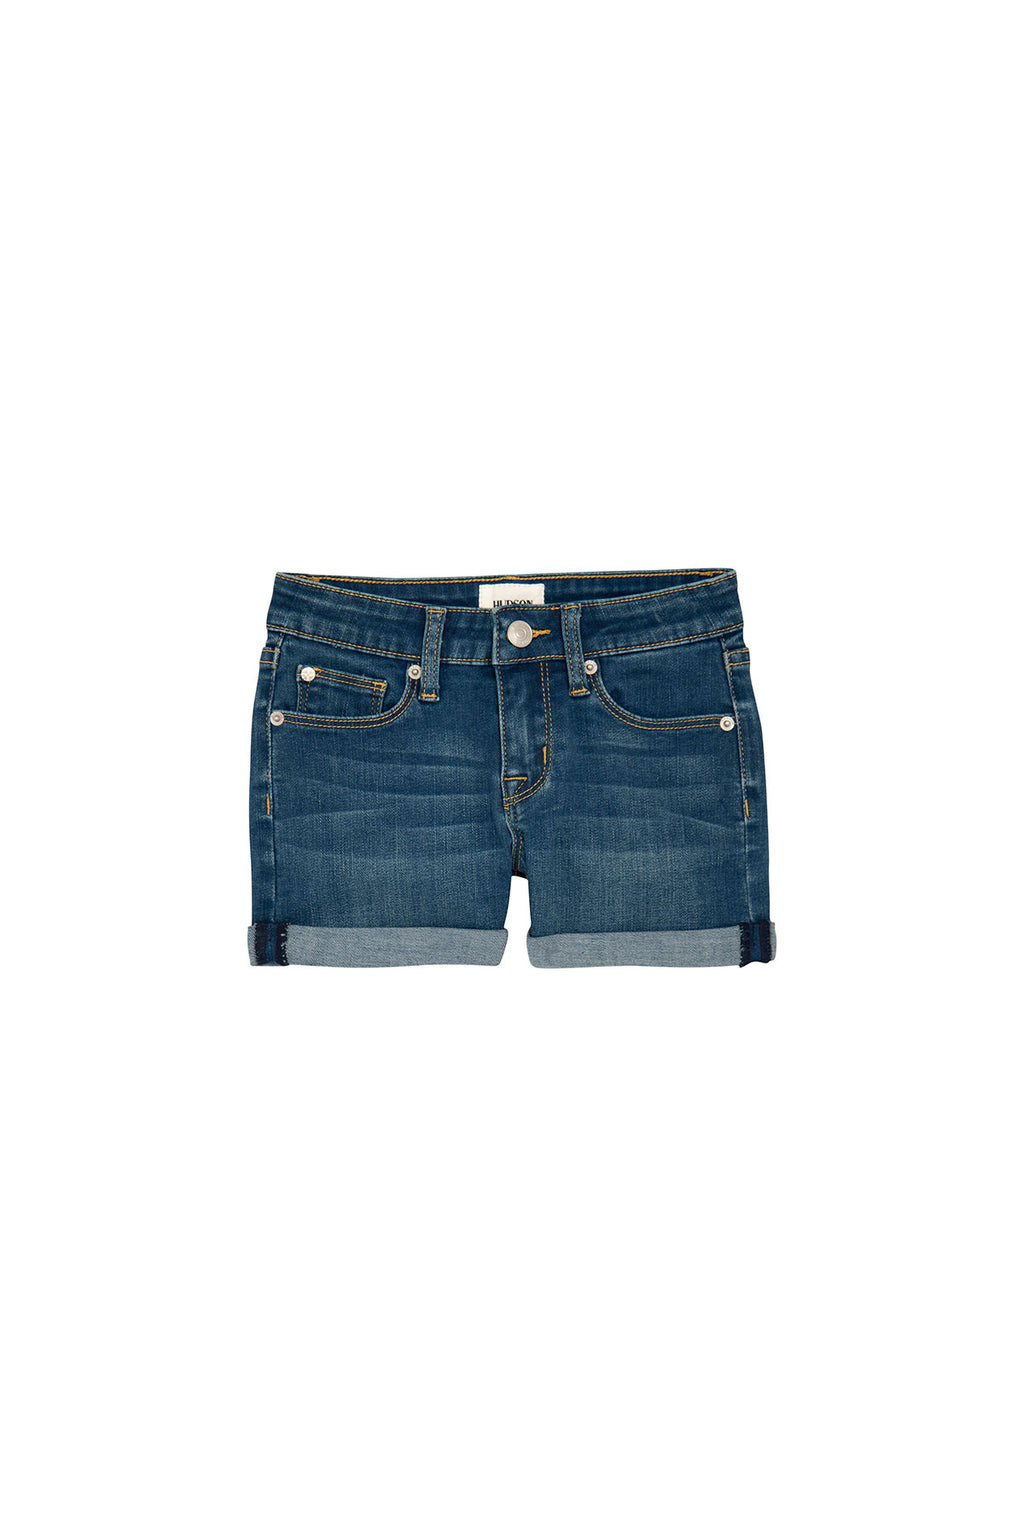 GIRLS BRIA SHORT, SIZES 7-16 - SUNWASHED - Image 1